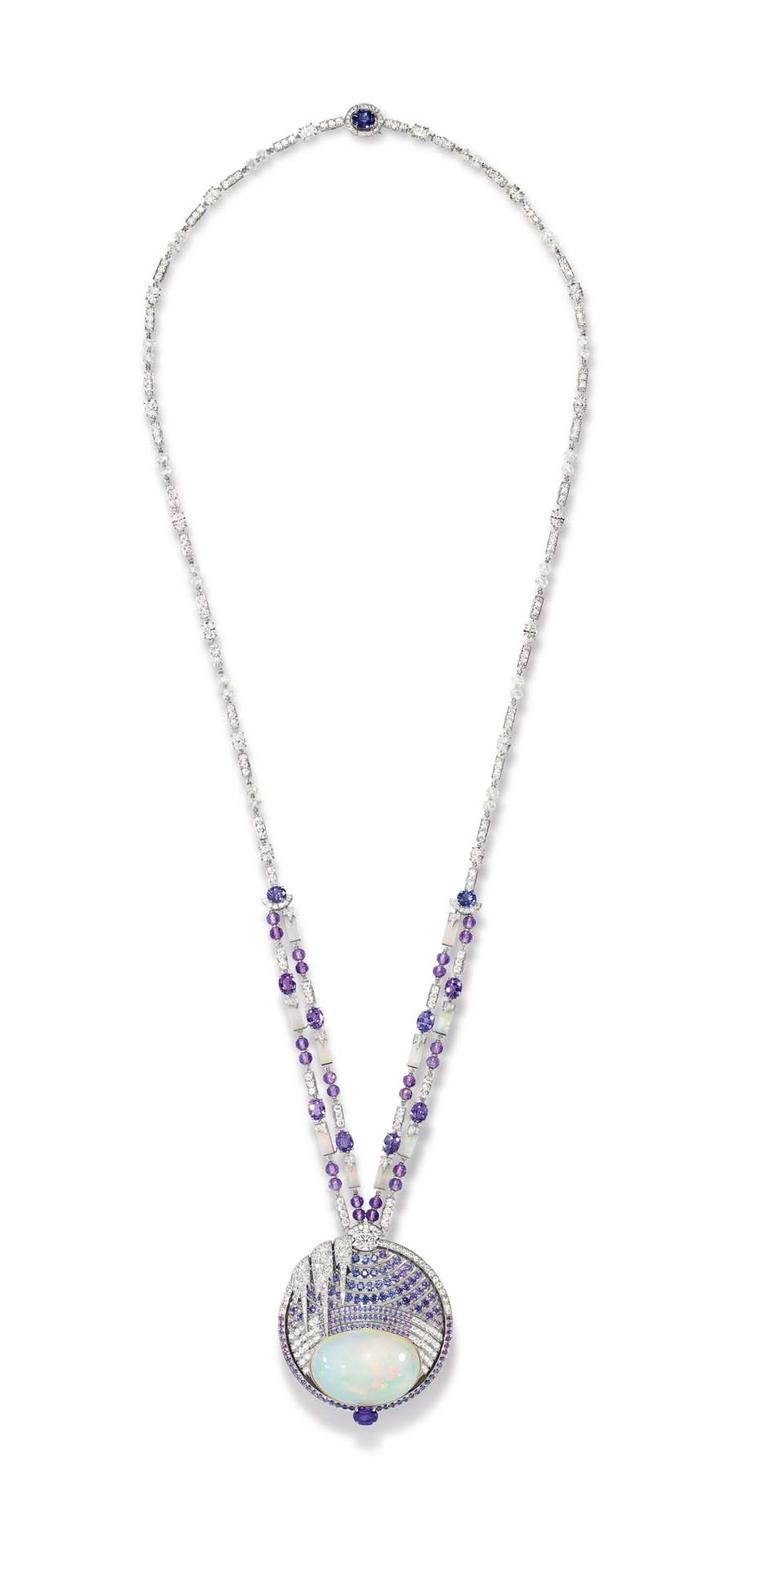 Chaumet's Lumieres d'Eau high jewellery necklace, created for the Biennale des Antiquaires in Paris, is set with a 59.58 ct cabochon-cut white opal and opal motifs from Ethiopia, round and oval-cut violet sapphires from Ceylon and Madagascar, oval-cut and